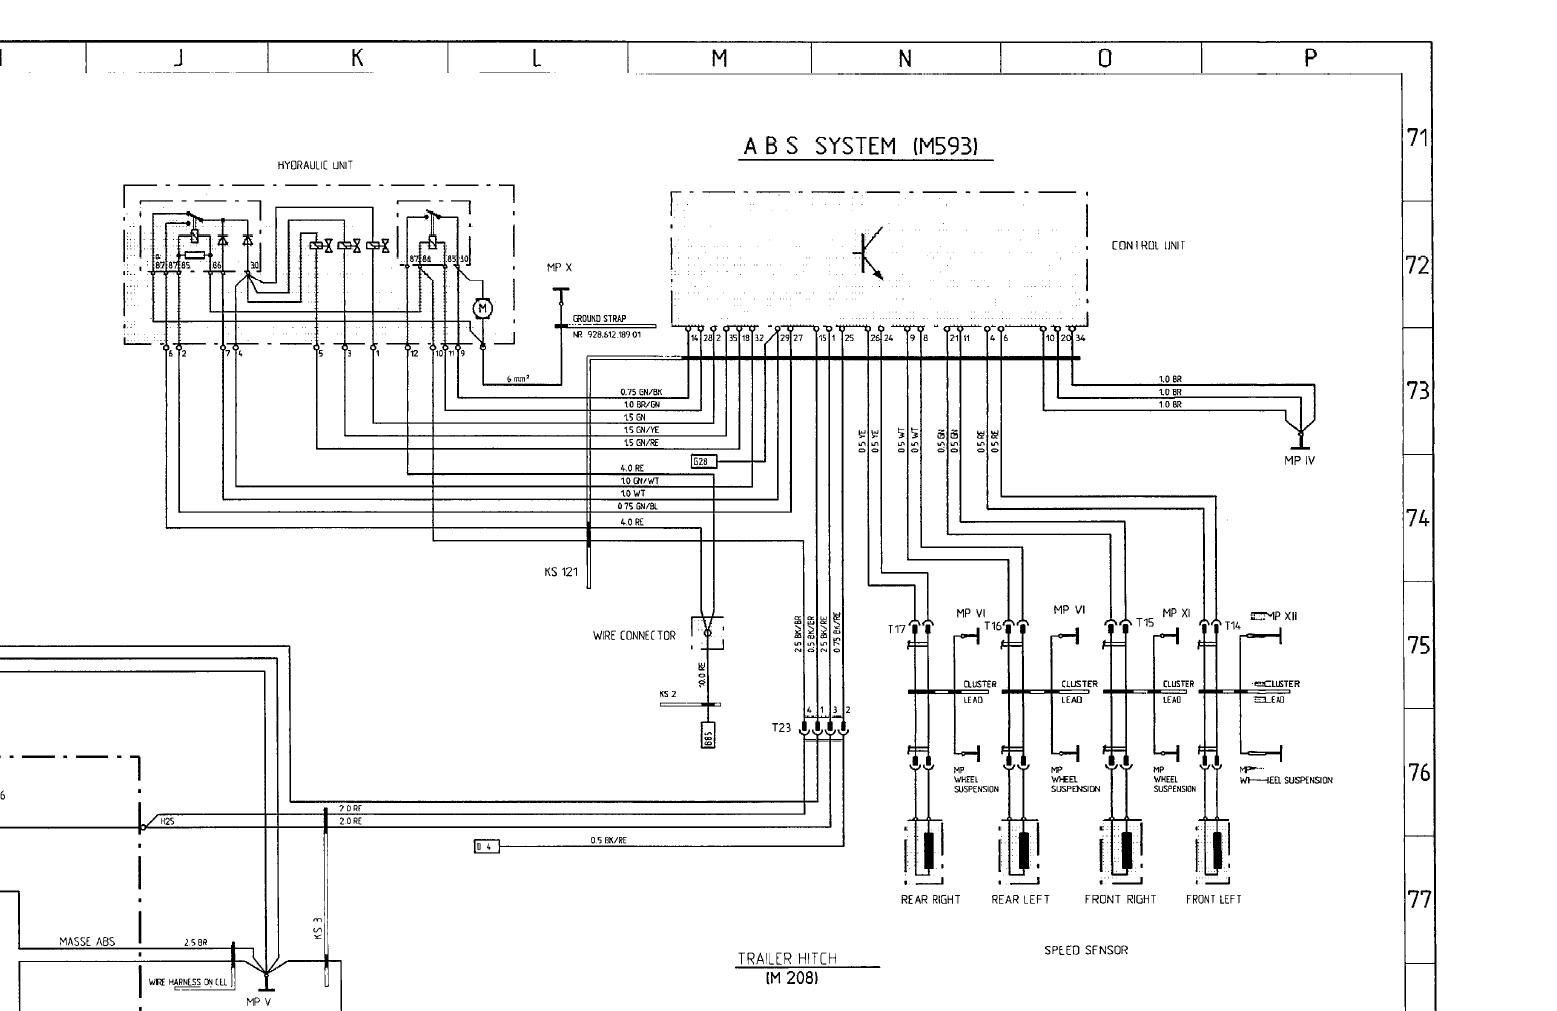 hight resolution of porsche 964 fuse diagram wiring diagram centrecayenne fuse box diagram wiring diagram week porsche 964